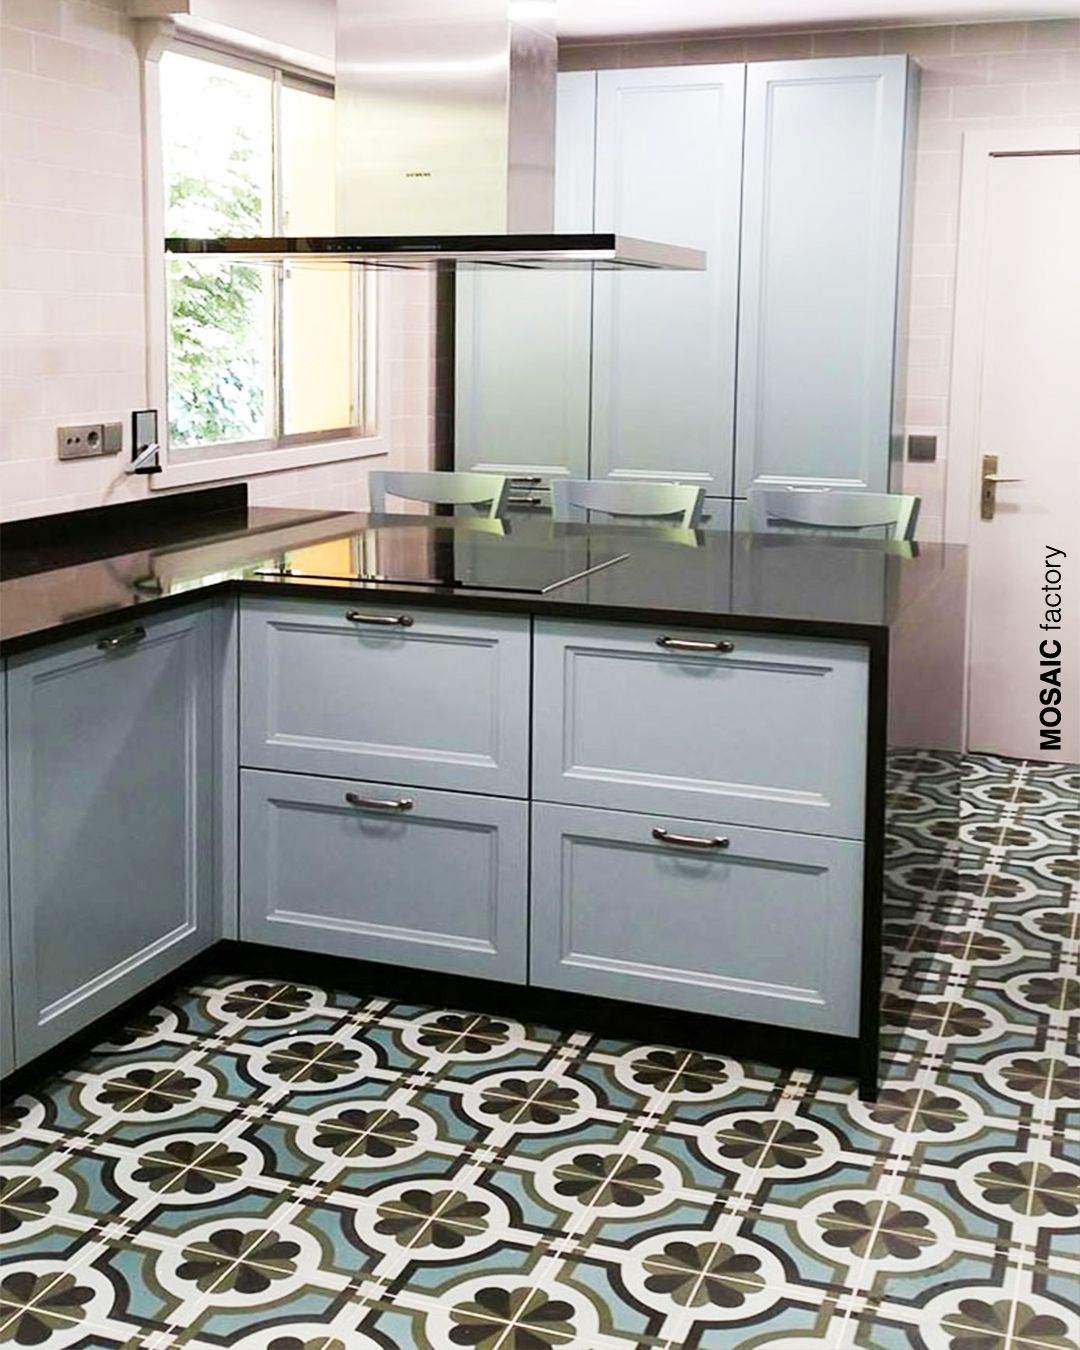 Decorative Kitchen Floor Tiles With A Vintage Pattern In Muted Green Colours Cement Tiles With Art Deco Inspired Tile Pattern Form Mosaic Factory Vinta Kuchnia